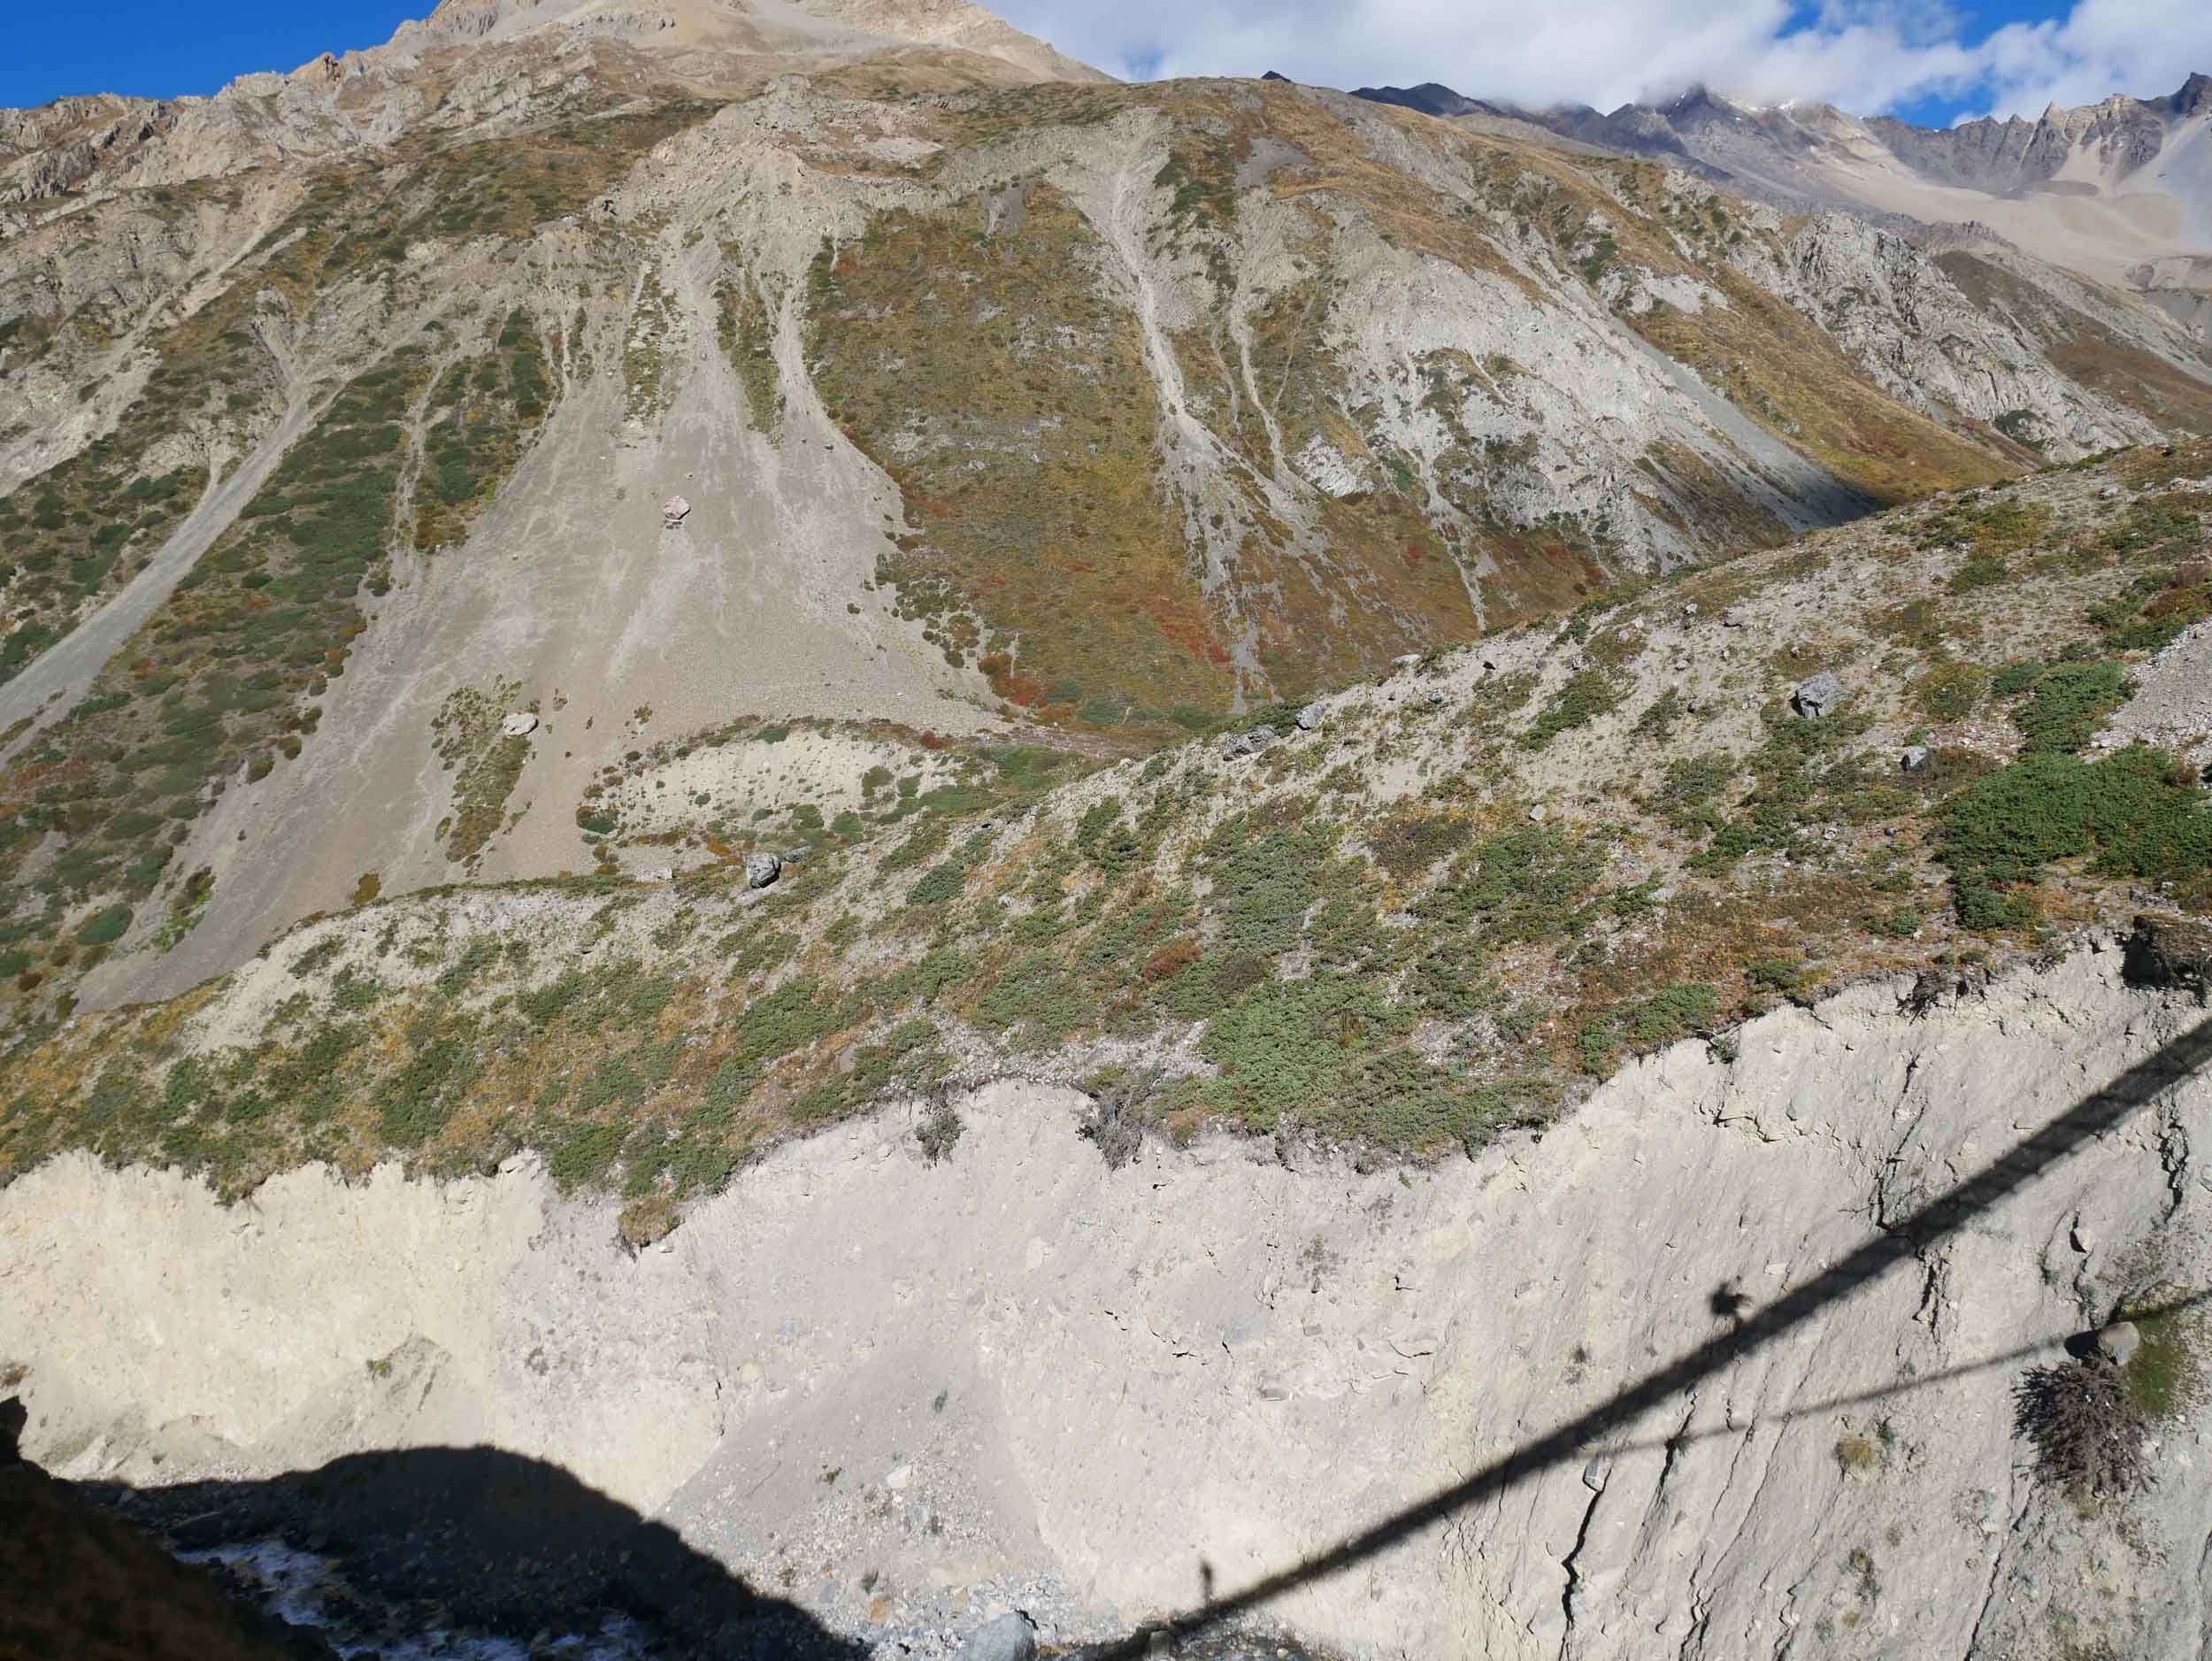 Early morning shadows as we made our way toward High Camp (Oct 8).